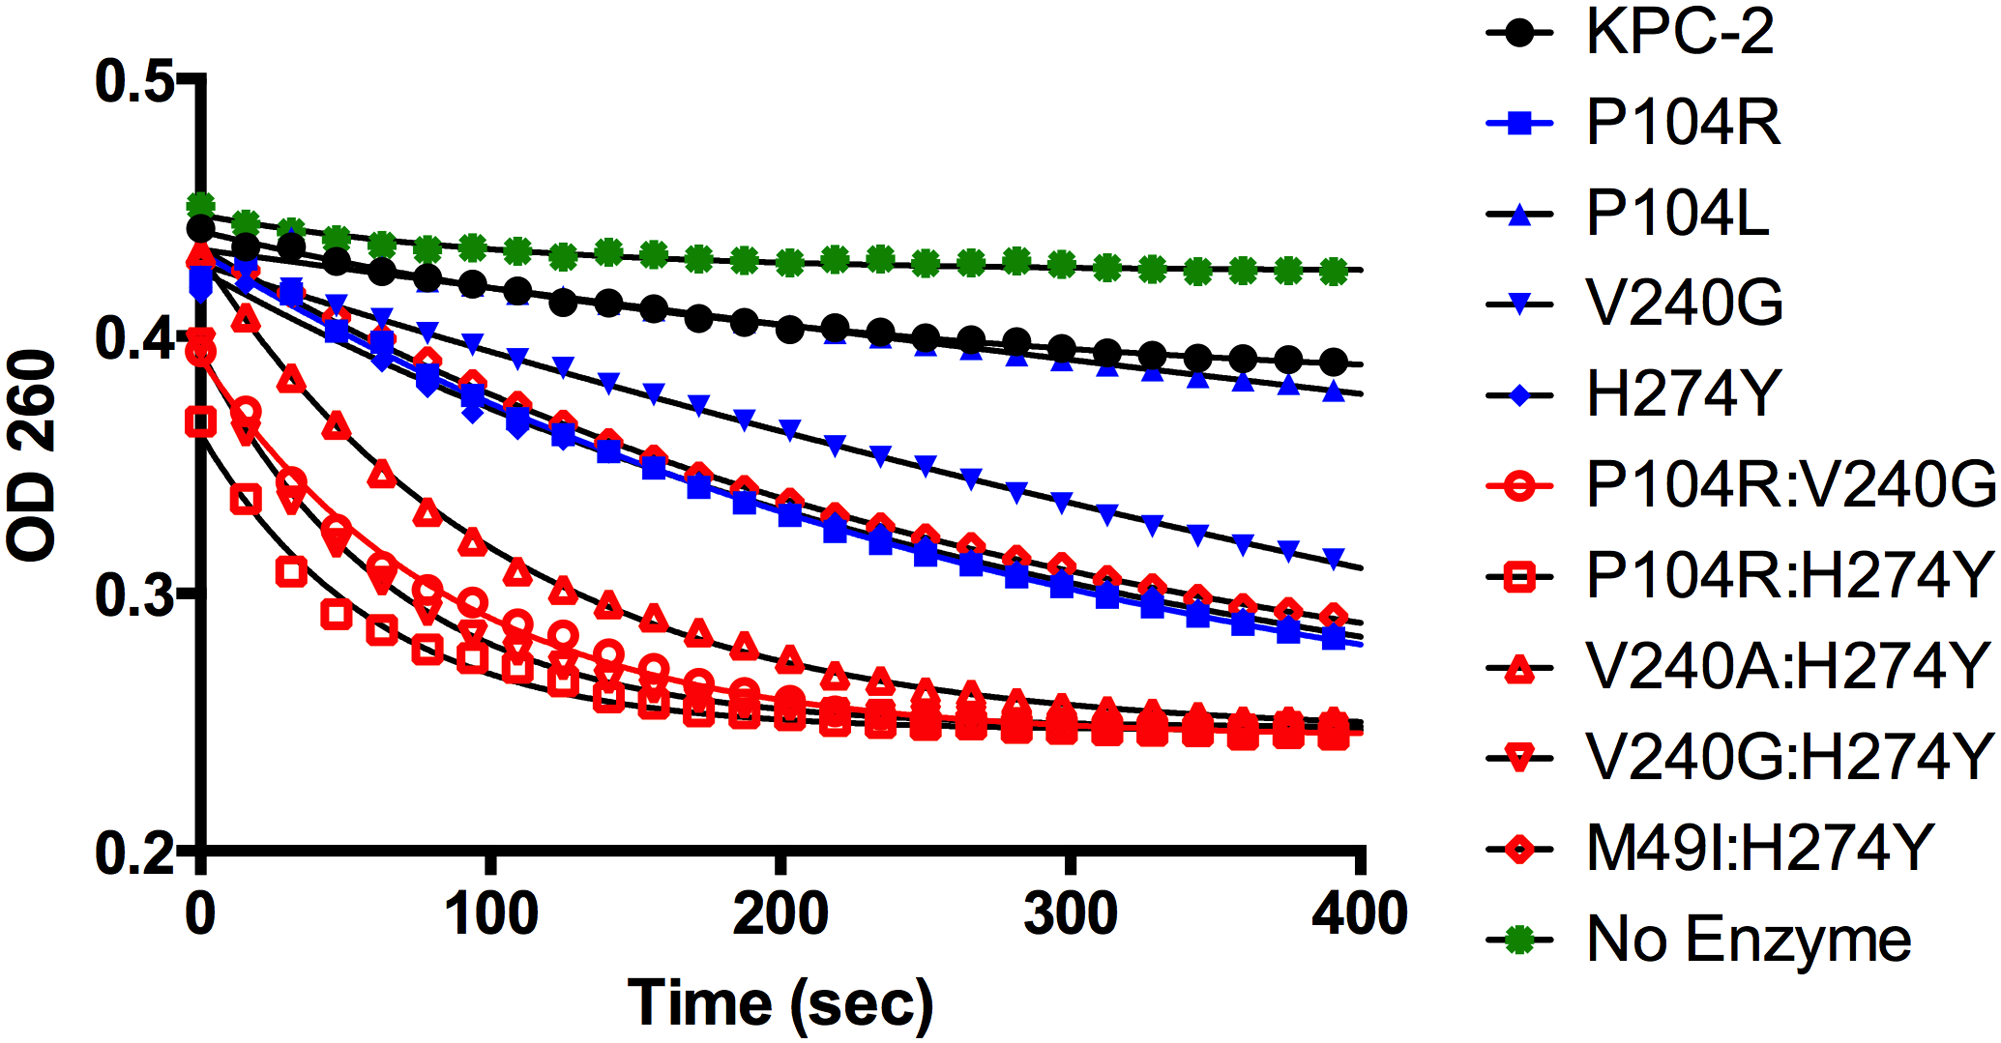 Progress curves of KPC-2 (black), single mutants (blue) and double mutants (red) and no enzyme control (green) for ceftazidime hydrolysis.